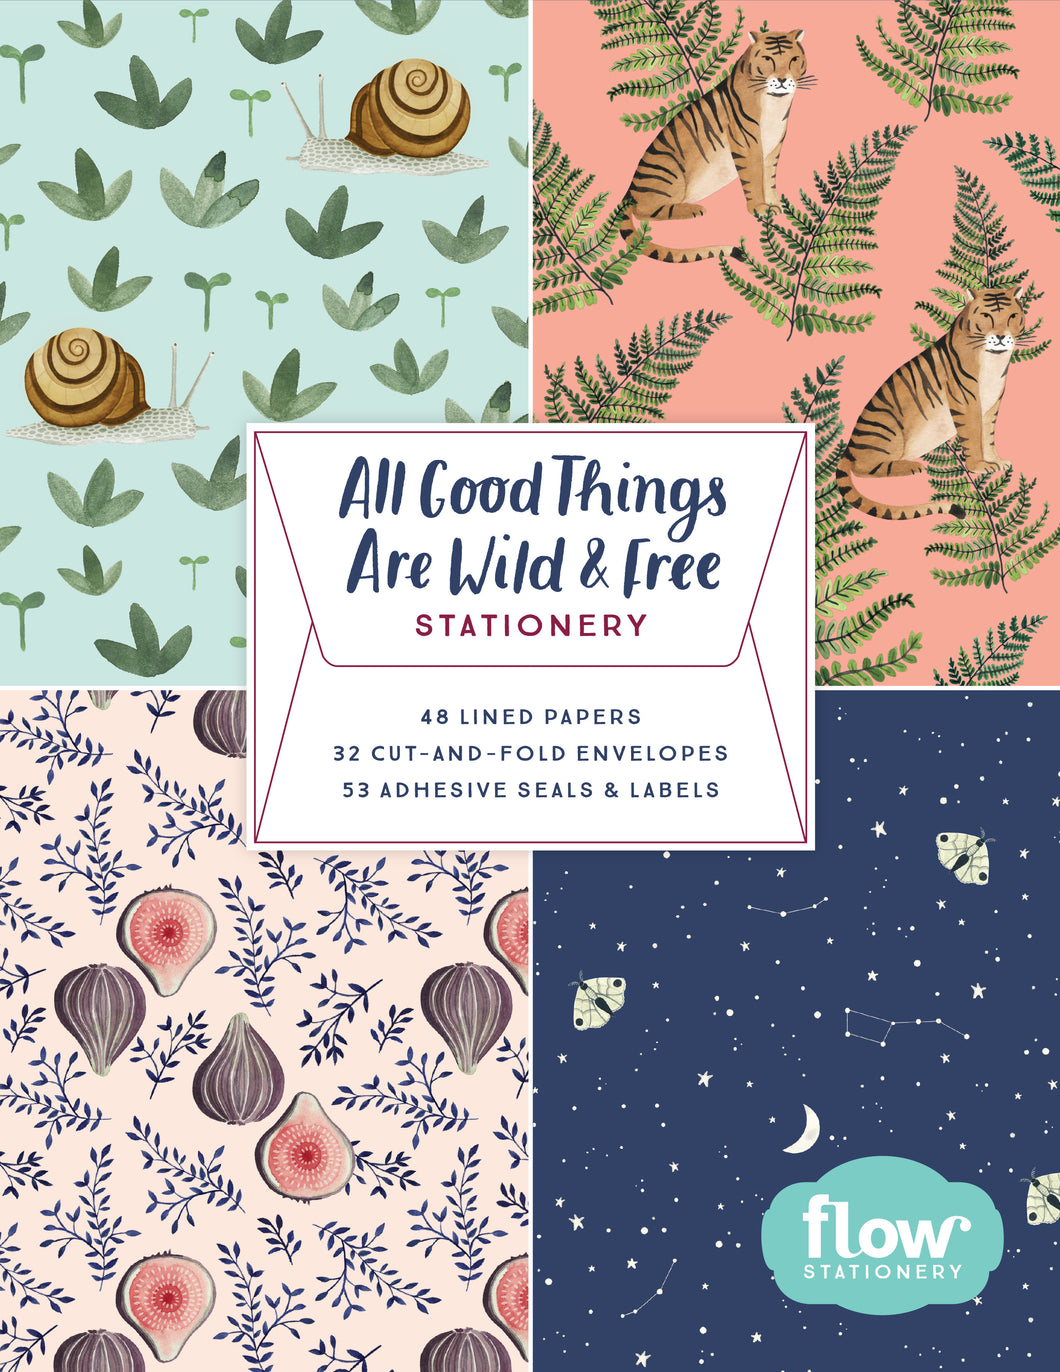 All Good Things are Wild and Free Stationery Set by Valesca van Waveren, Irene Smit, Astrid van der Hulst